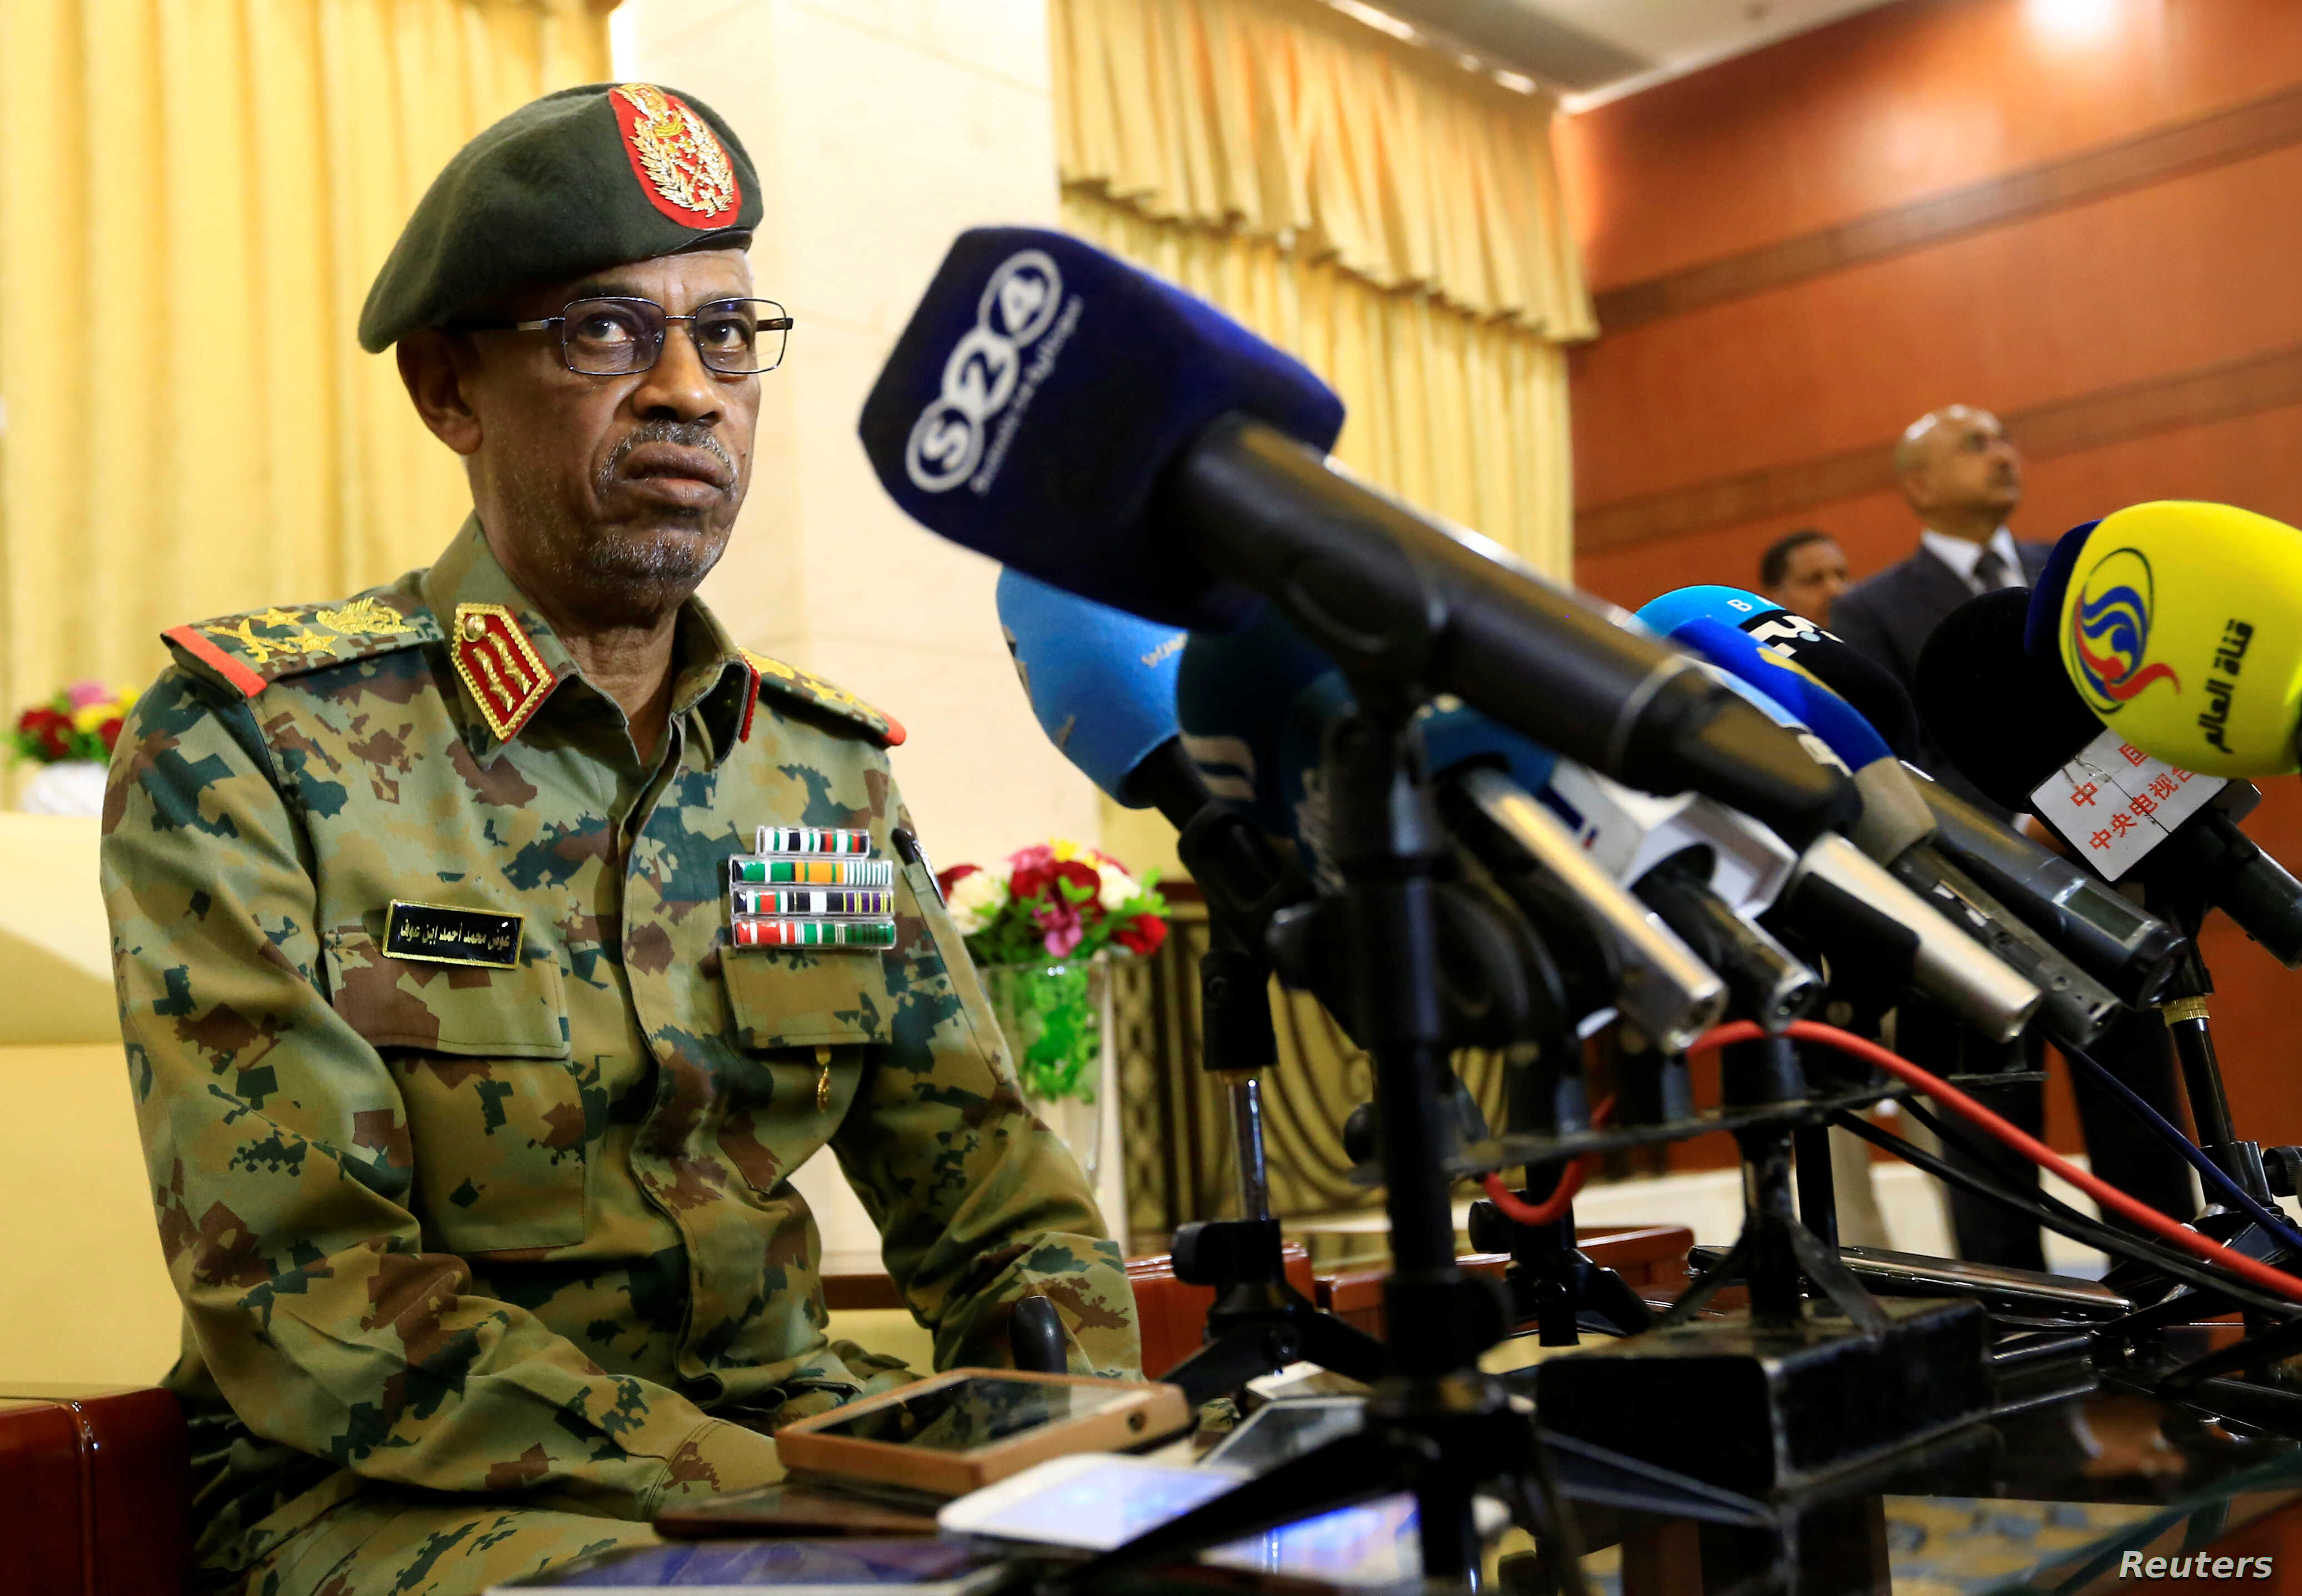 FILE - Major General Awad Mohamed Ahmed Ibn Auf, who was to lead a military council to run Sudan over the next two years, speaks to the media, in Khartoum, Sudan, Feb. 24, 2019. Ibn Auf resigned Friday.